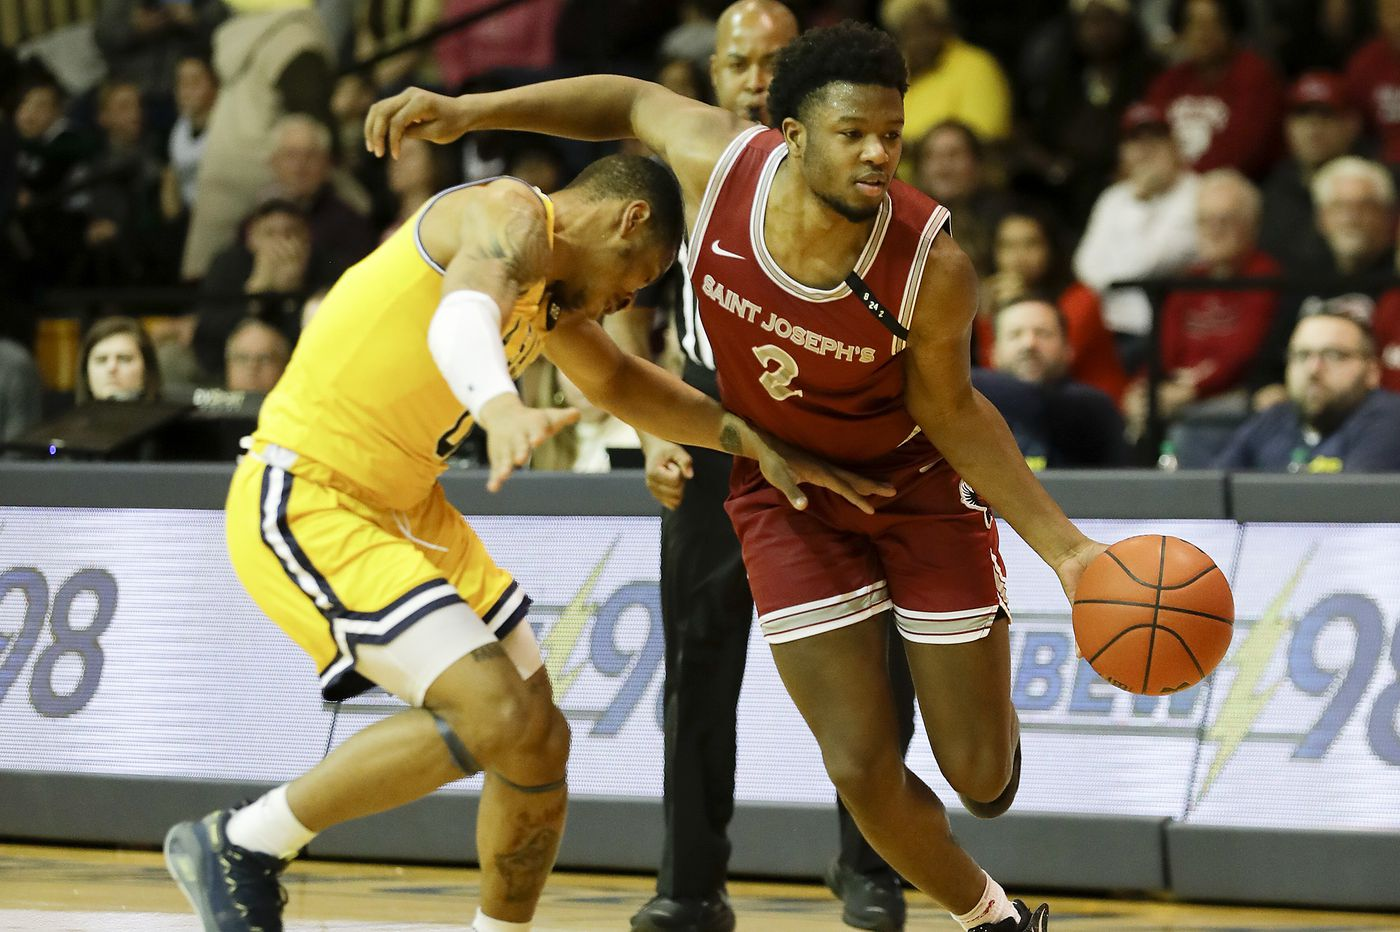 Without Ryan Daly, St. Joseph's falters in second half and falls to Rhode Island